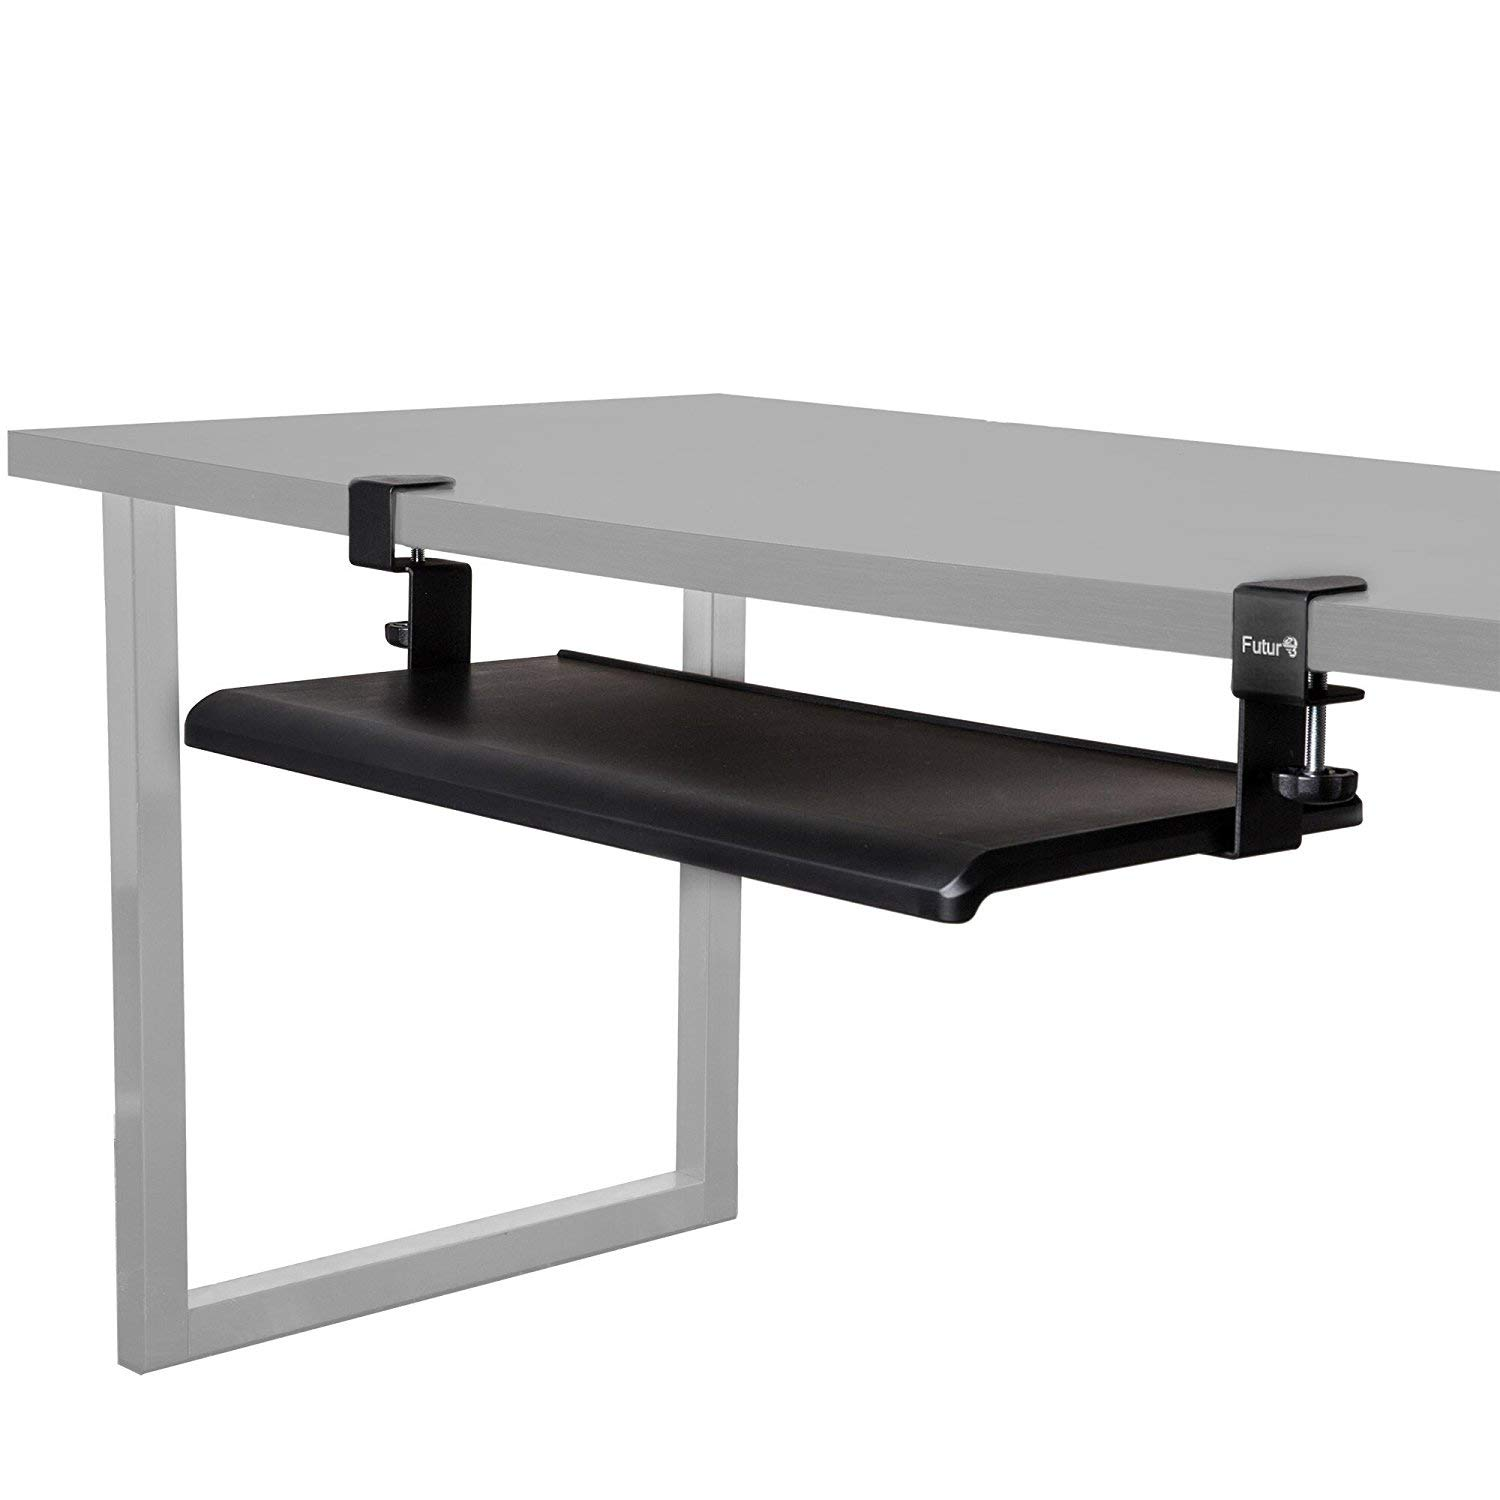 Futur3 Office Sliding Under-Desk Keyboard Tray- Extra Wide Surface- 5 Minutes Easy Installation Clamp On Keyboard and Mouse Drawer- Perfect for Office, Home, School- Ergonomic and Comfortable Design